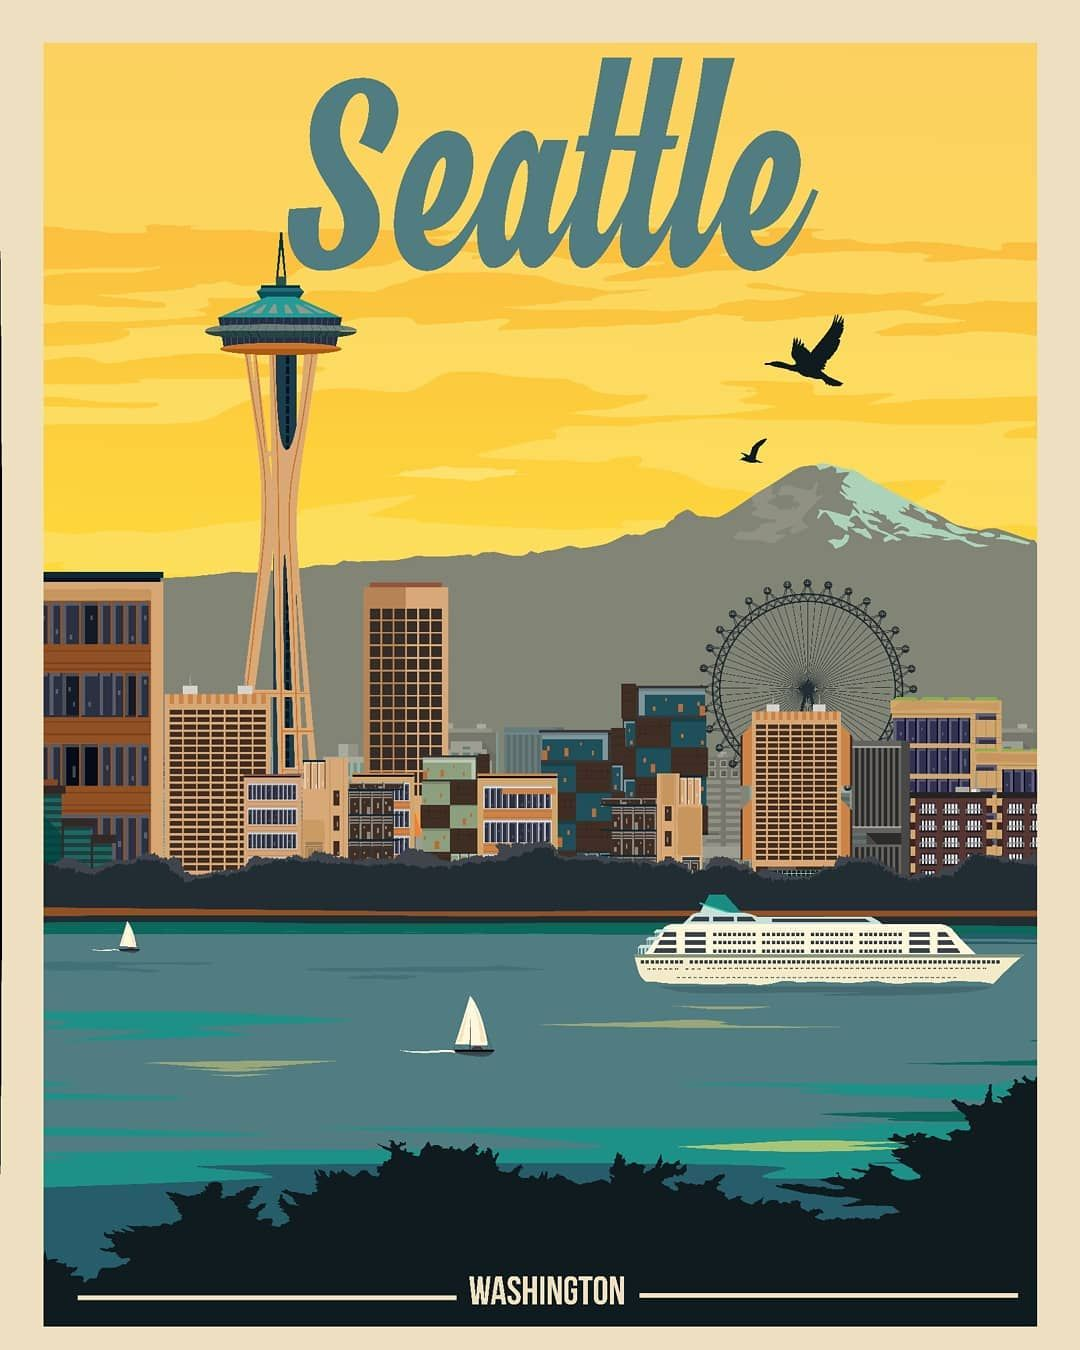 We Seattle Get Yours Today On Paper Framed Or On Canvas Pictured At Bcgoodsintl Com T Travel Posters Vintage Travel Posters Vintage Postcards Travel